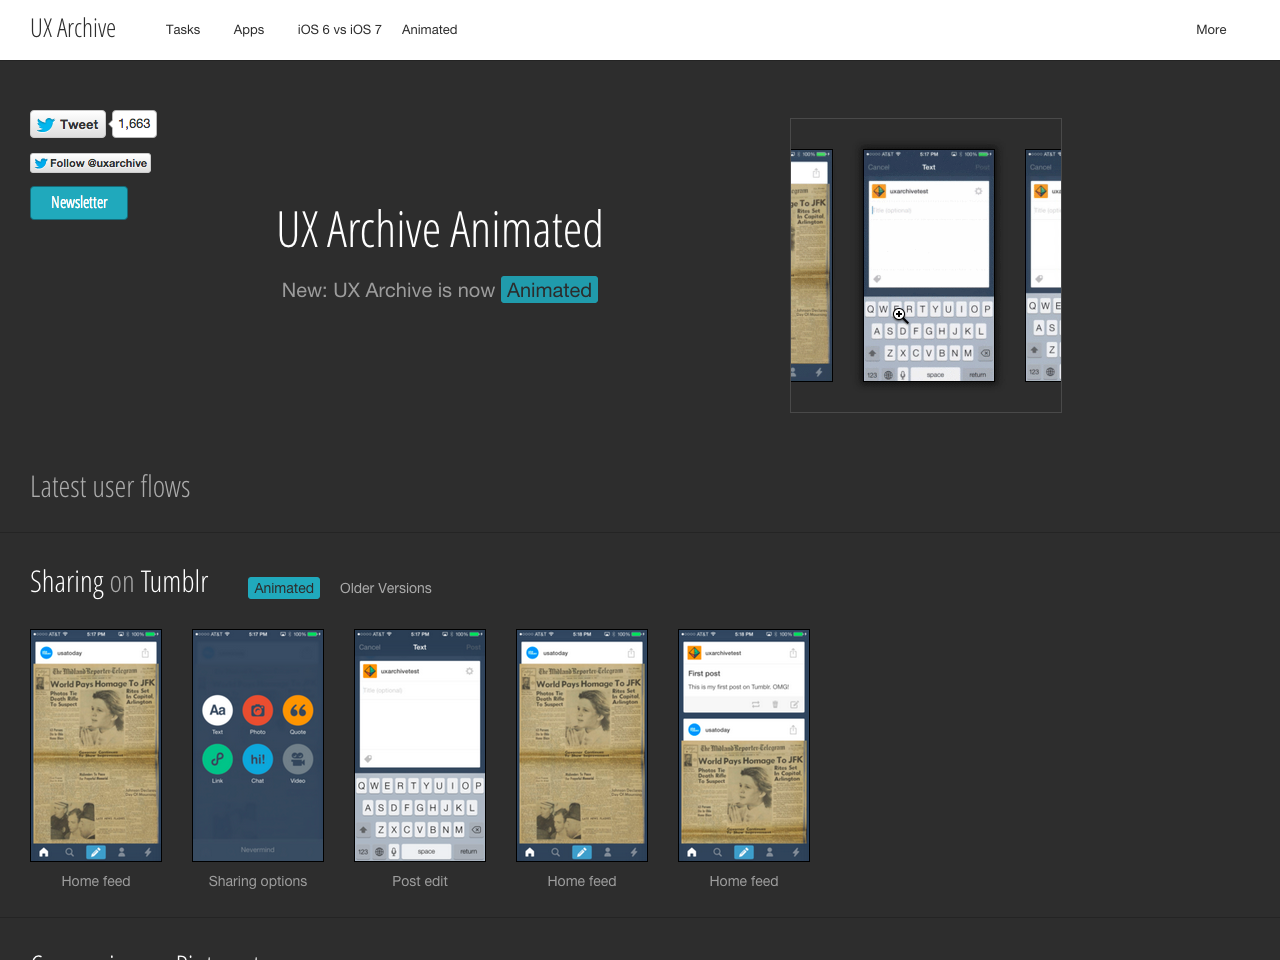 UX Archive Animated